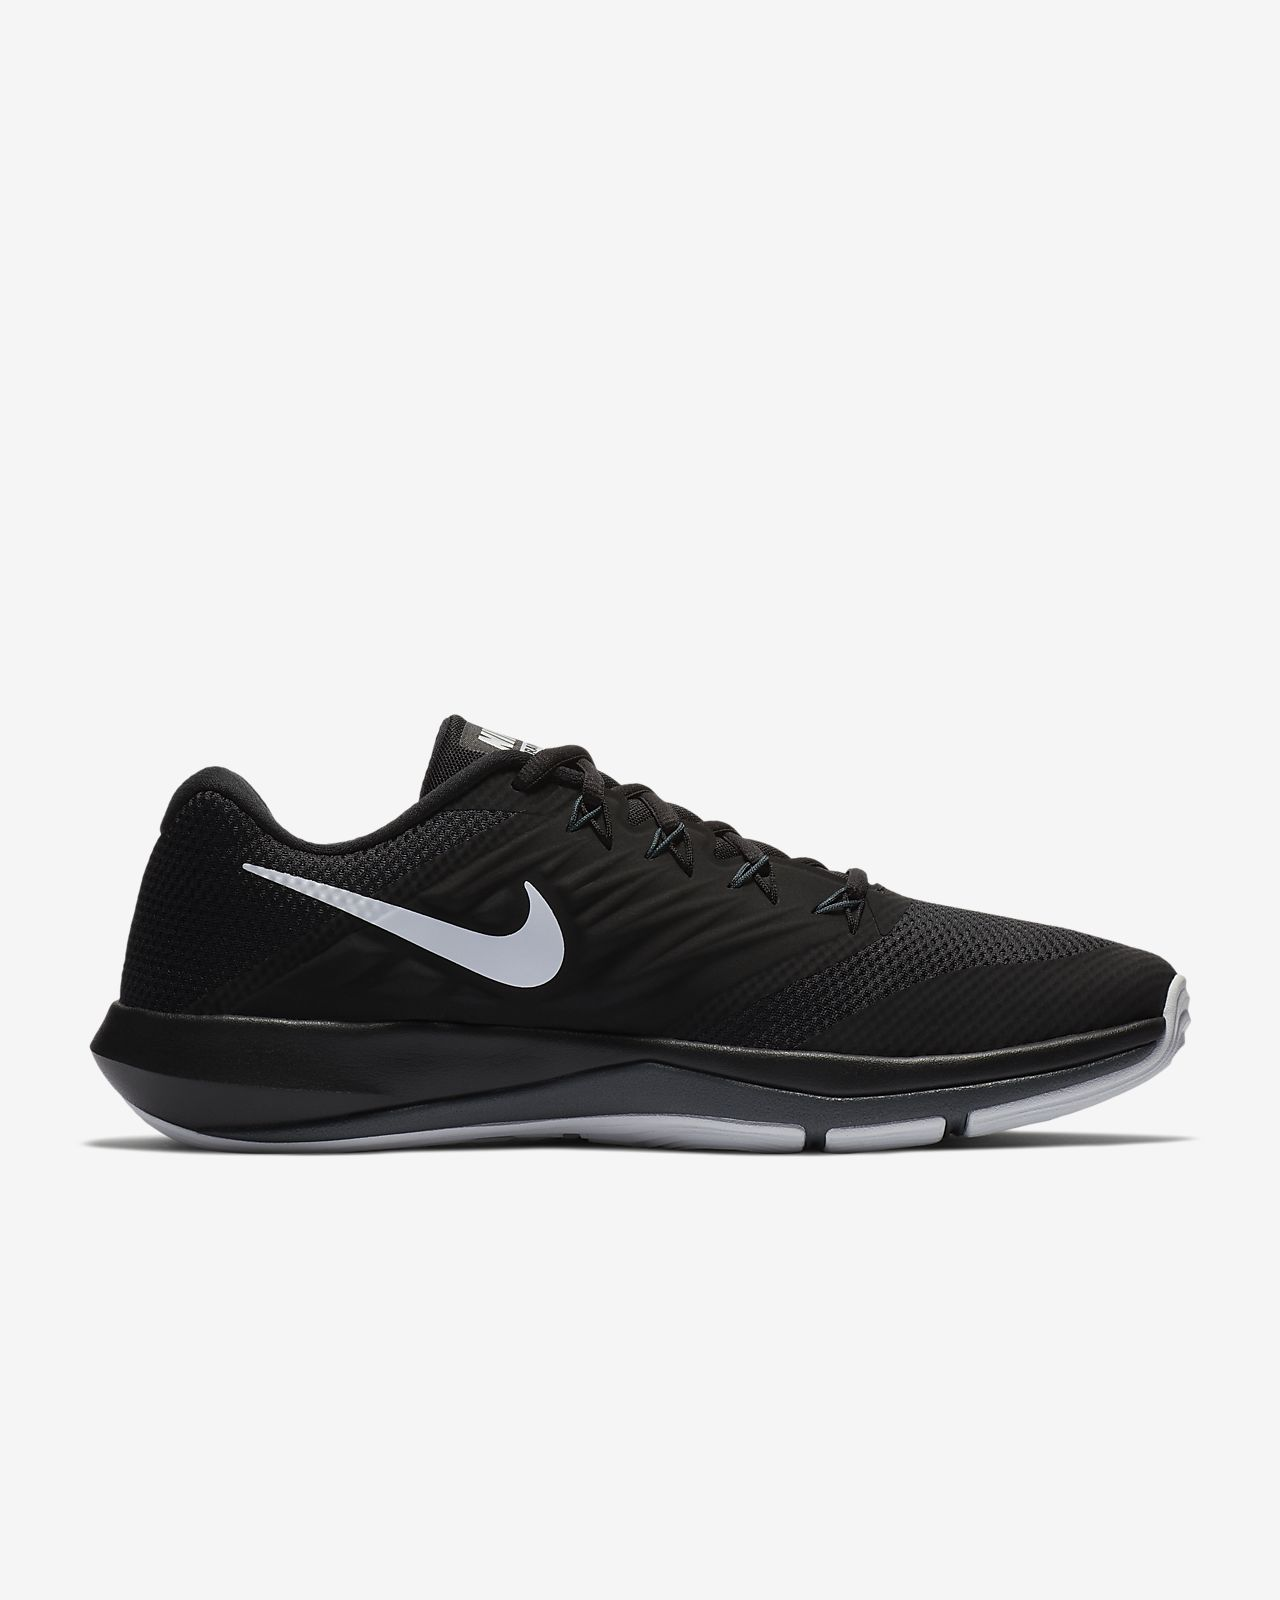 sale retailer 333b2 d3f9c Nike Lunar Prime Iron II Men's Gym/Training/Walking Shoe. Nike.com